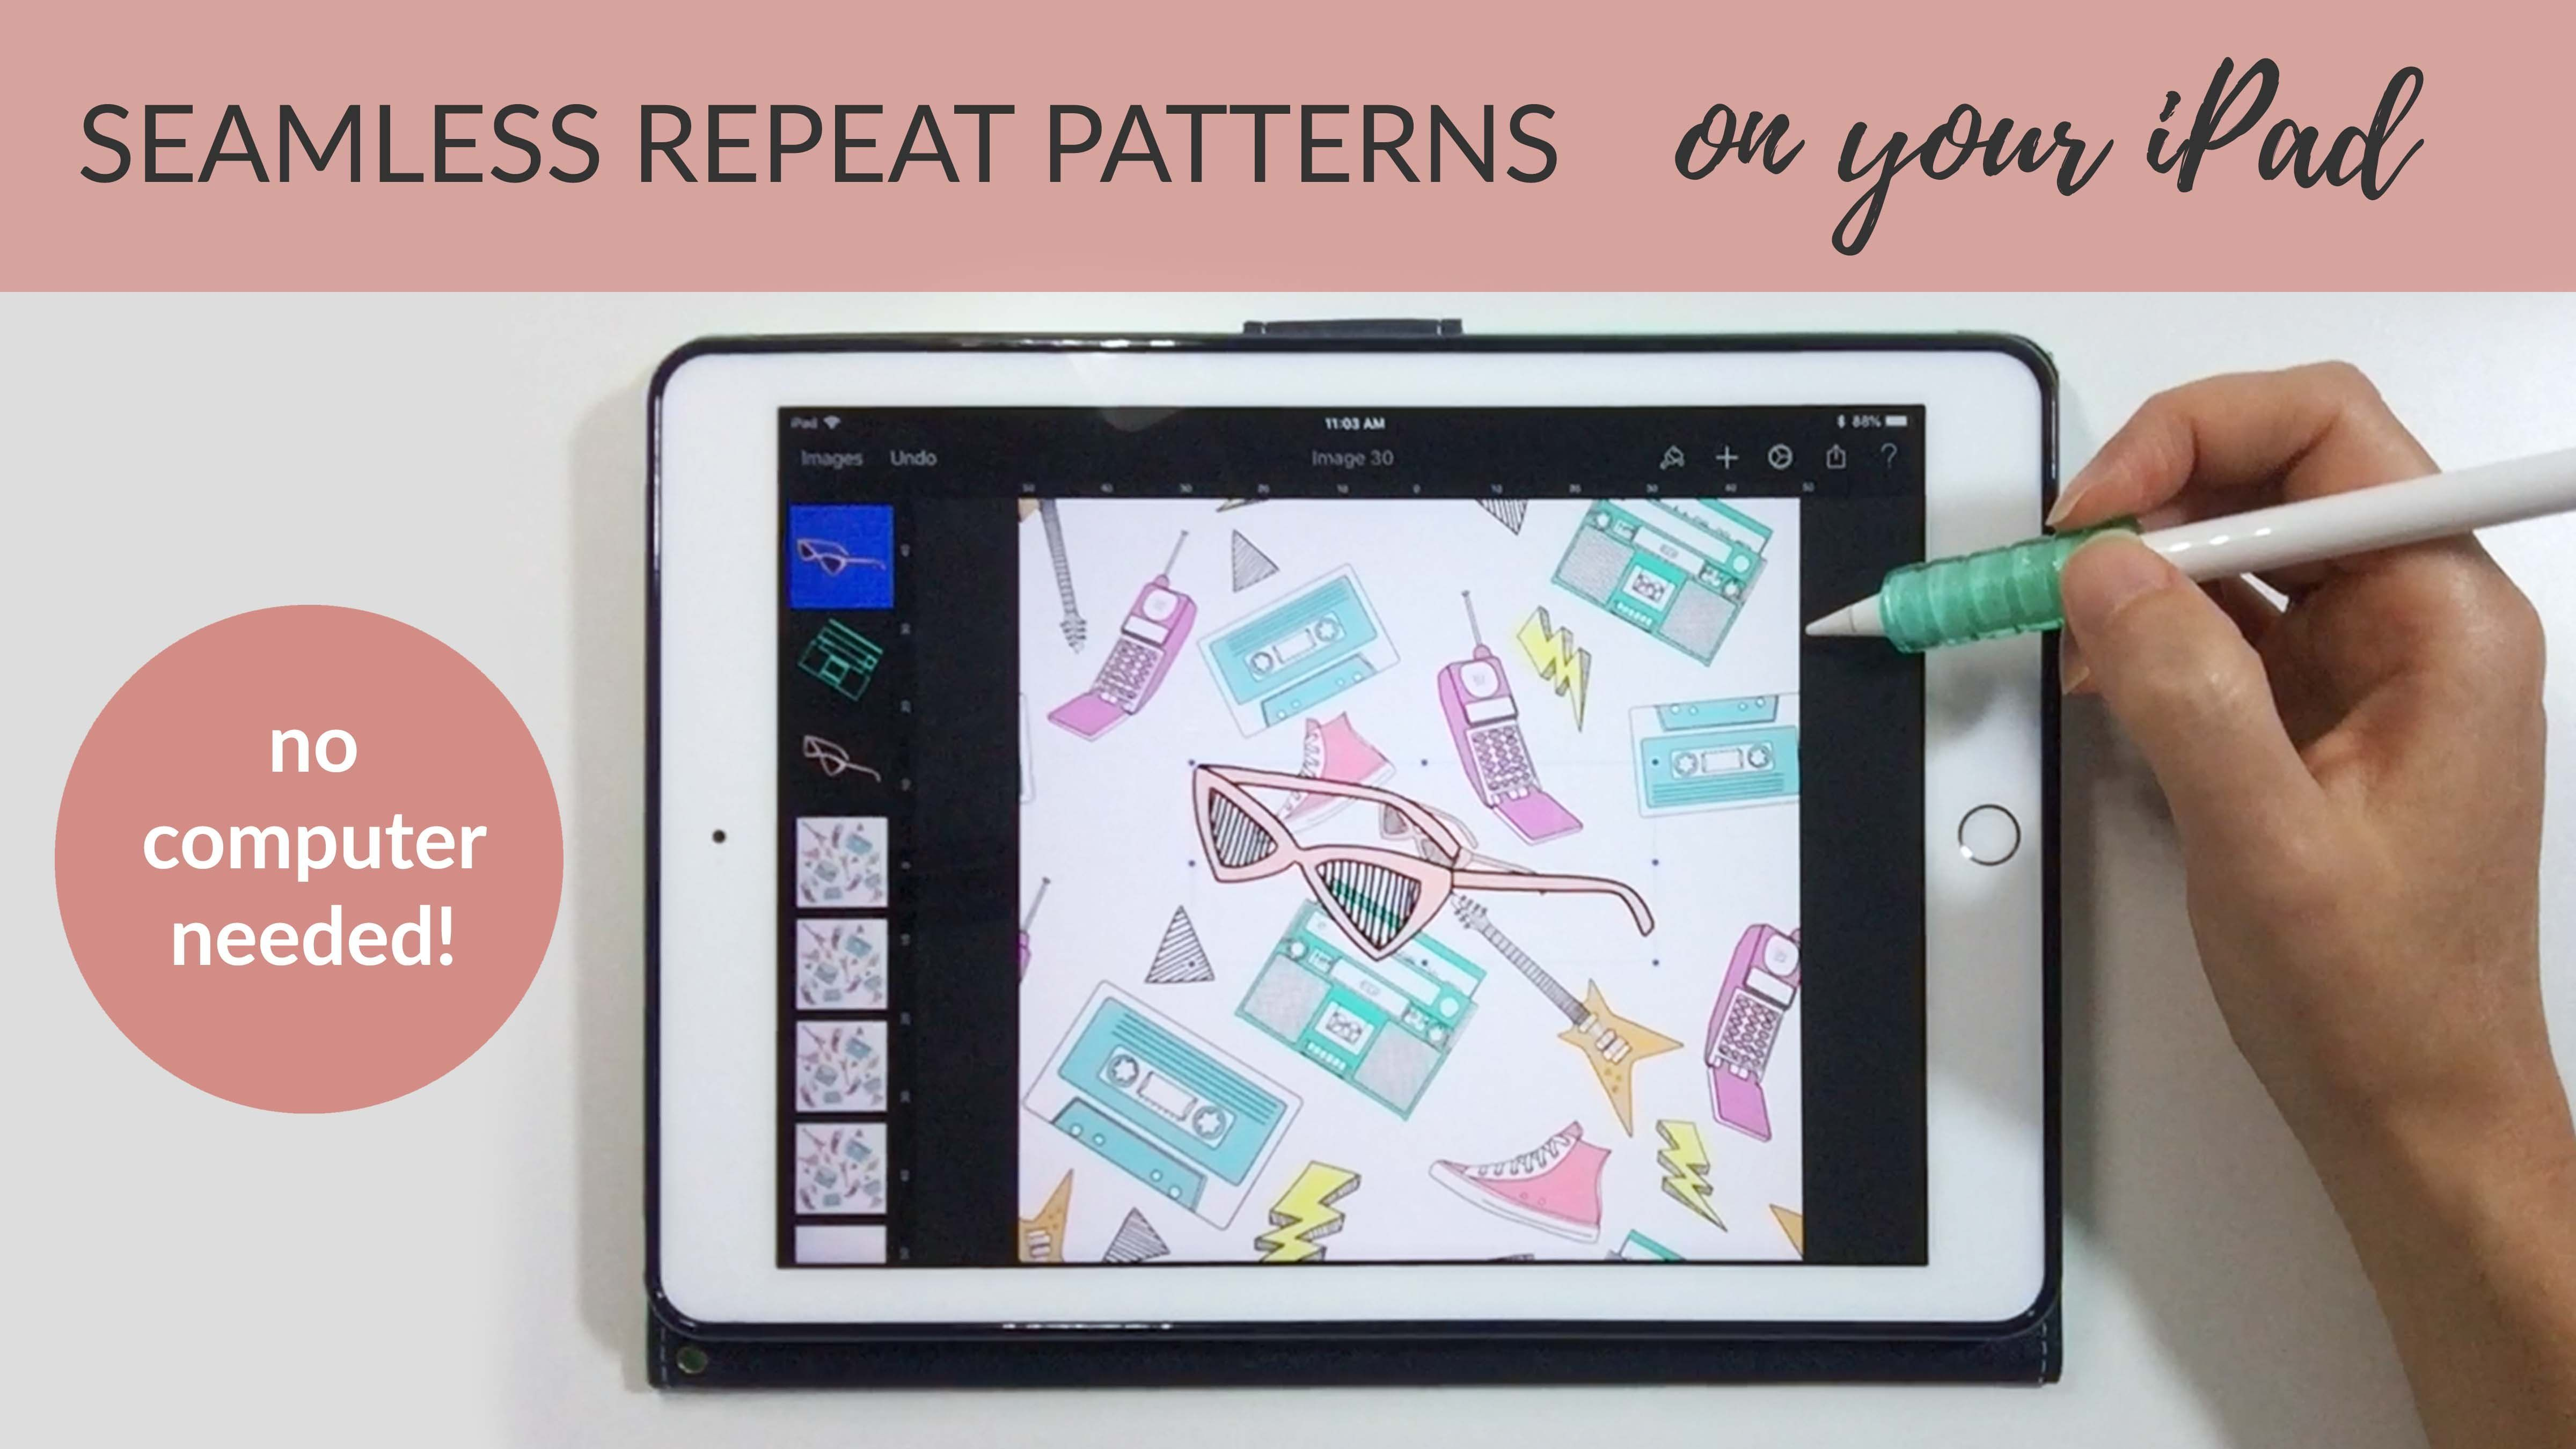 In This Class I Want To Show You How To Create A Seamless Repeat